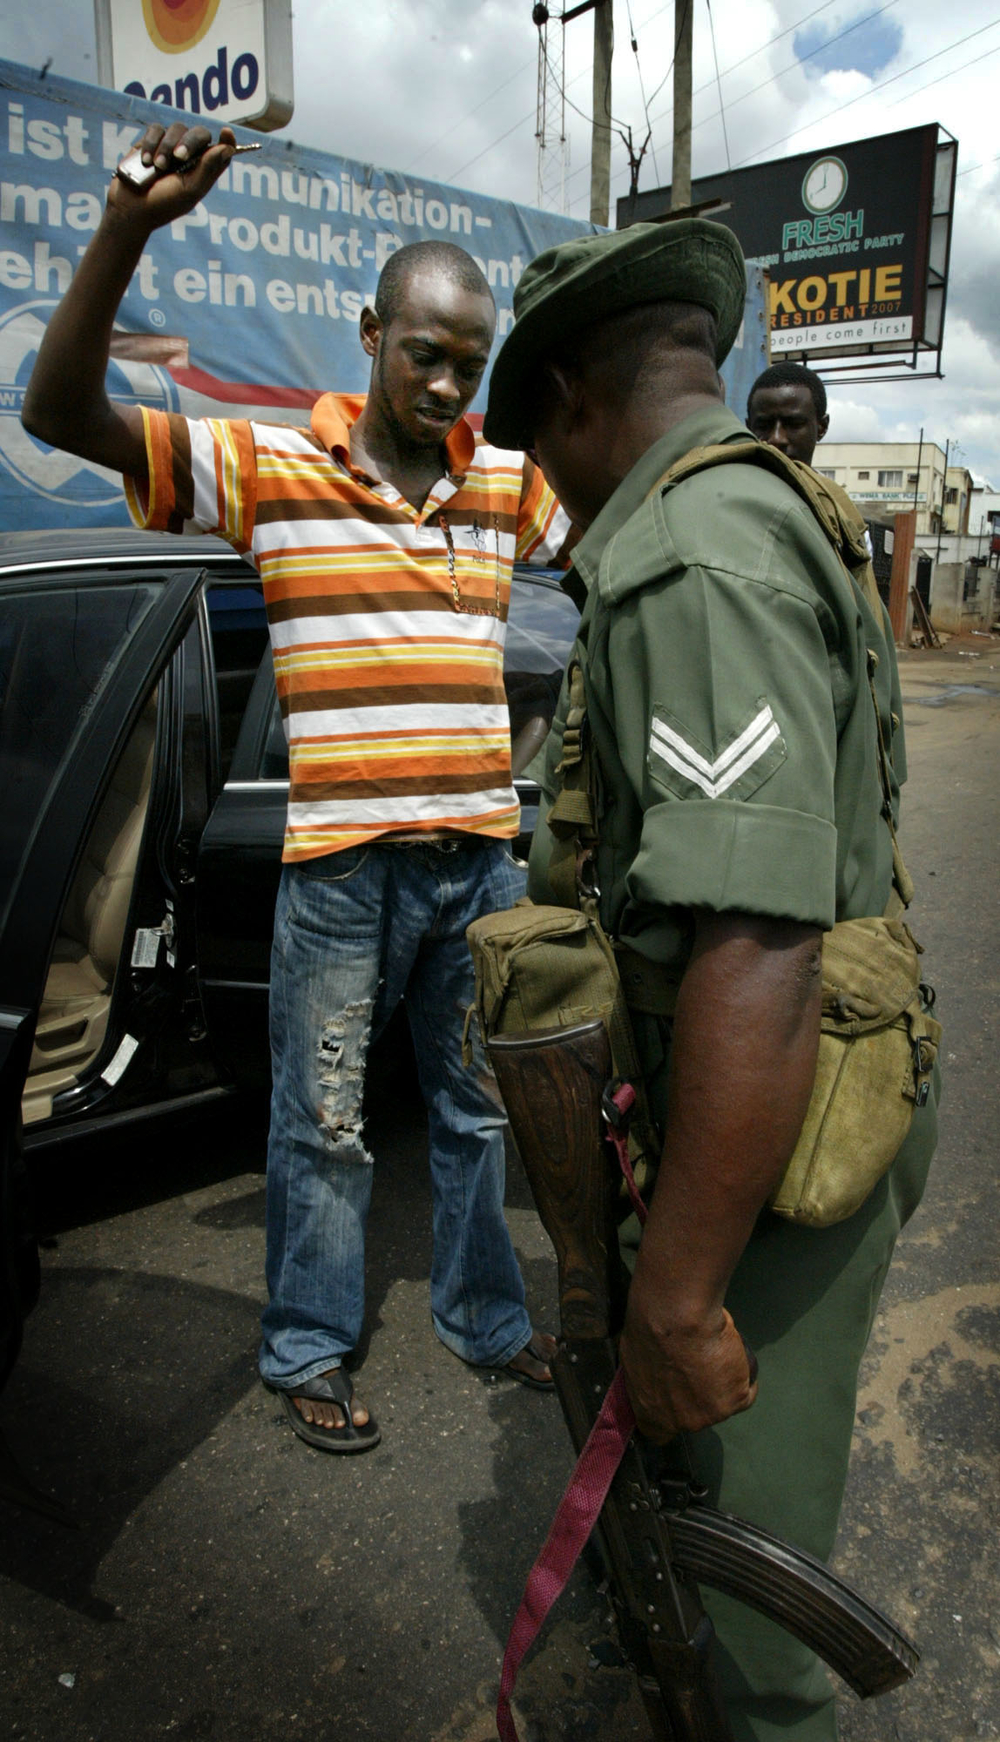 A soldier searches a  civilian car in Lagos,  Nigeria, April 2007. Nigeria's recent  election results proclaiming a landslide victory for the People's Democratic Party and their presidential candidate, Umaru Musa Yar' Adua, have been met  by a deafening s